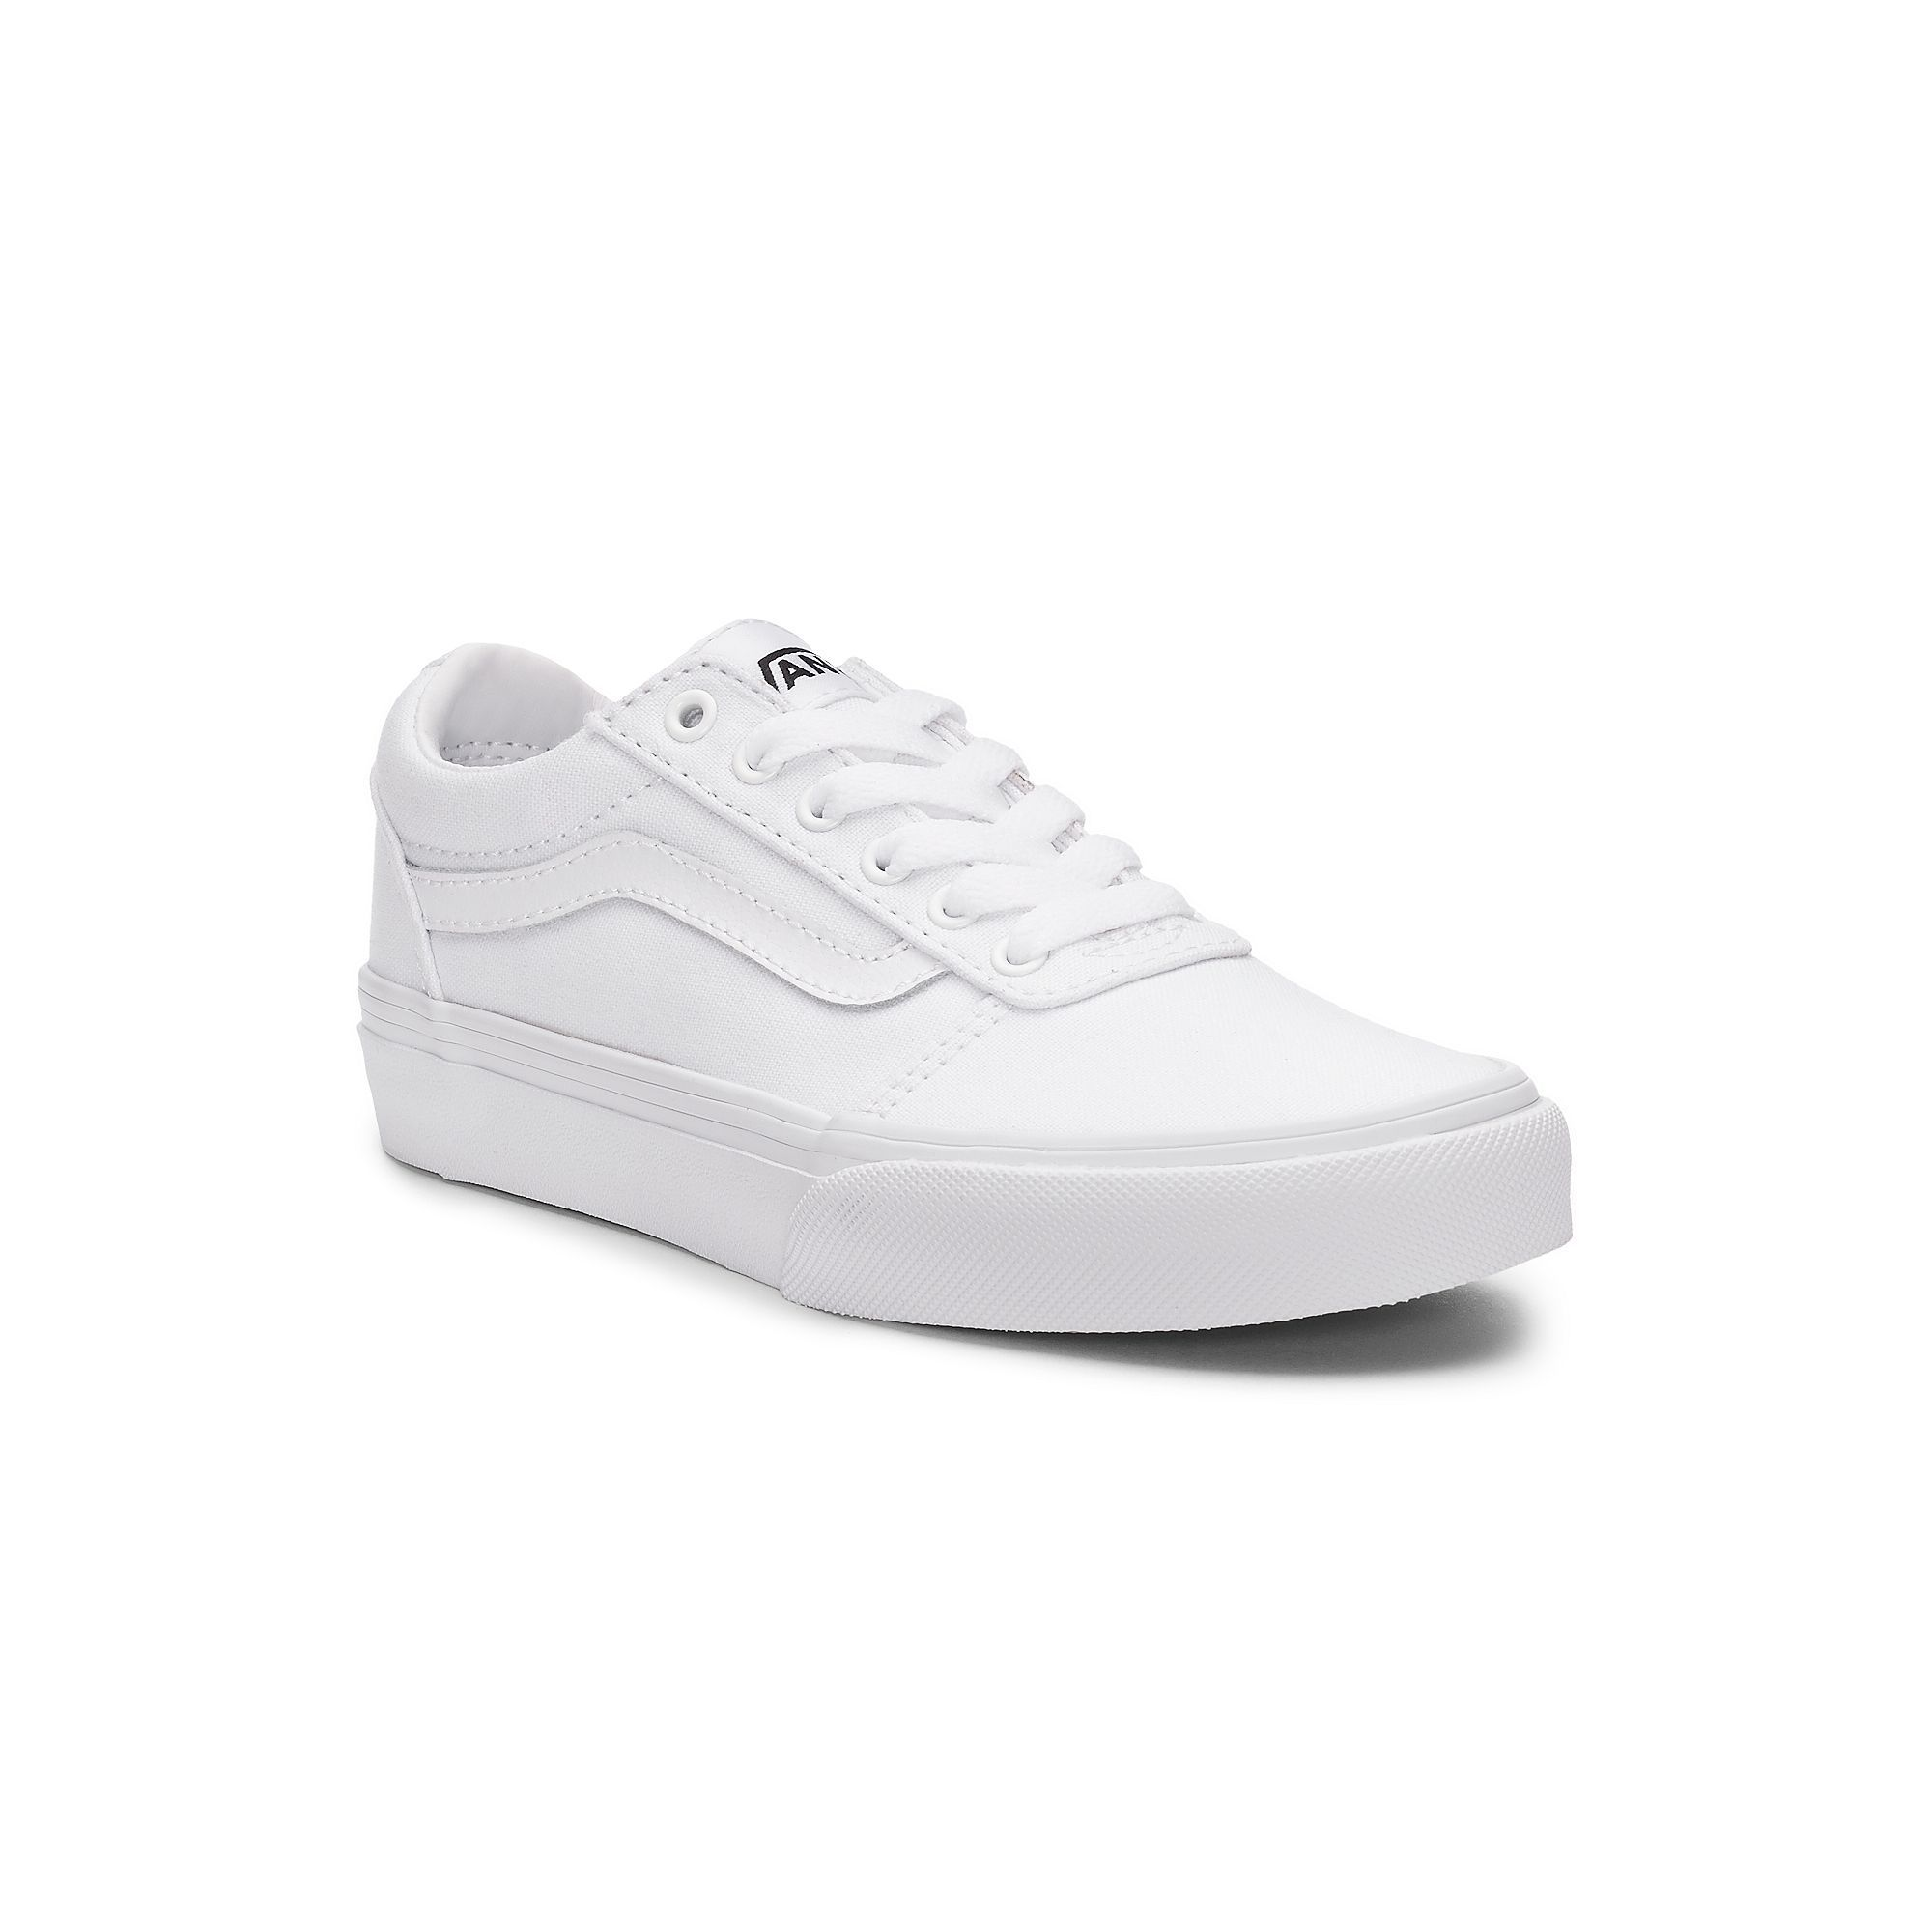 Vans Ward Low Boys' Skate Shoes, Size: 12, White | Boys